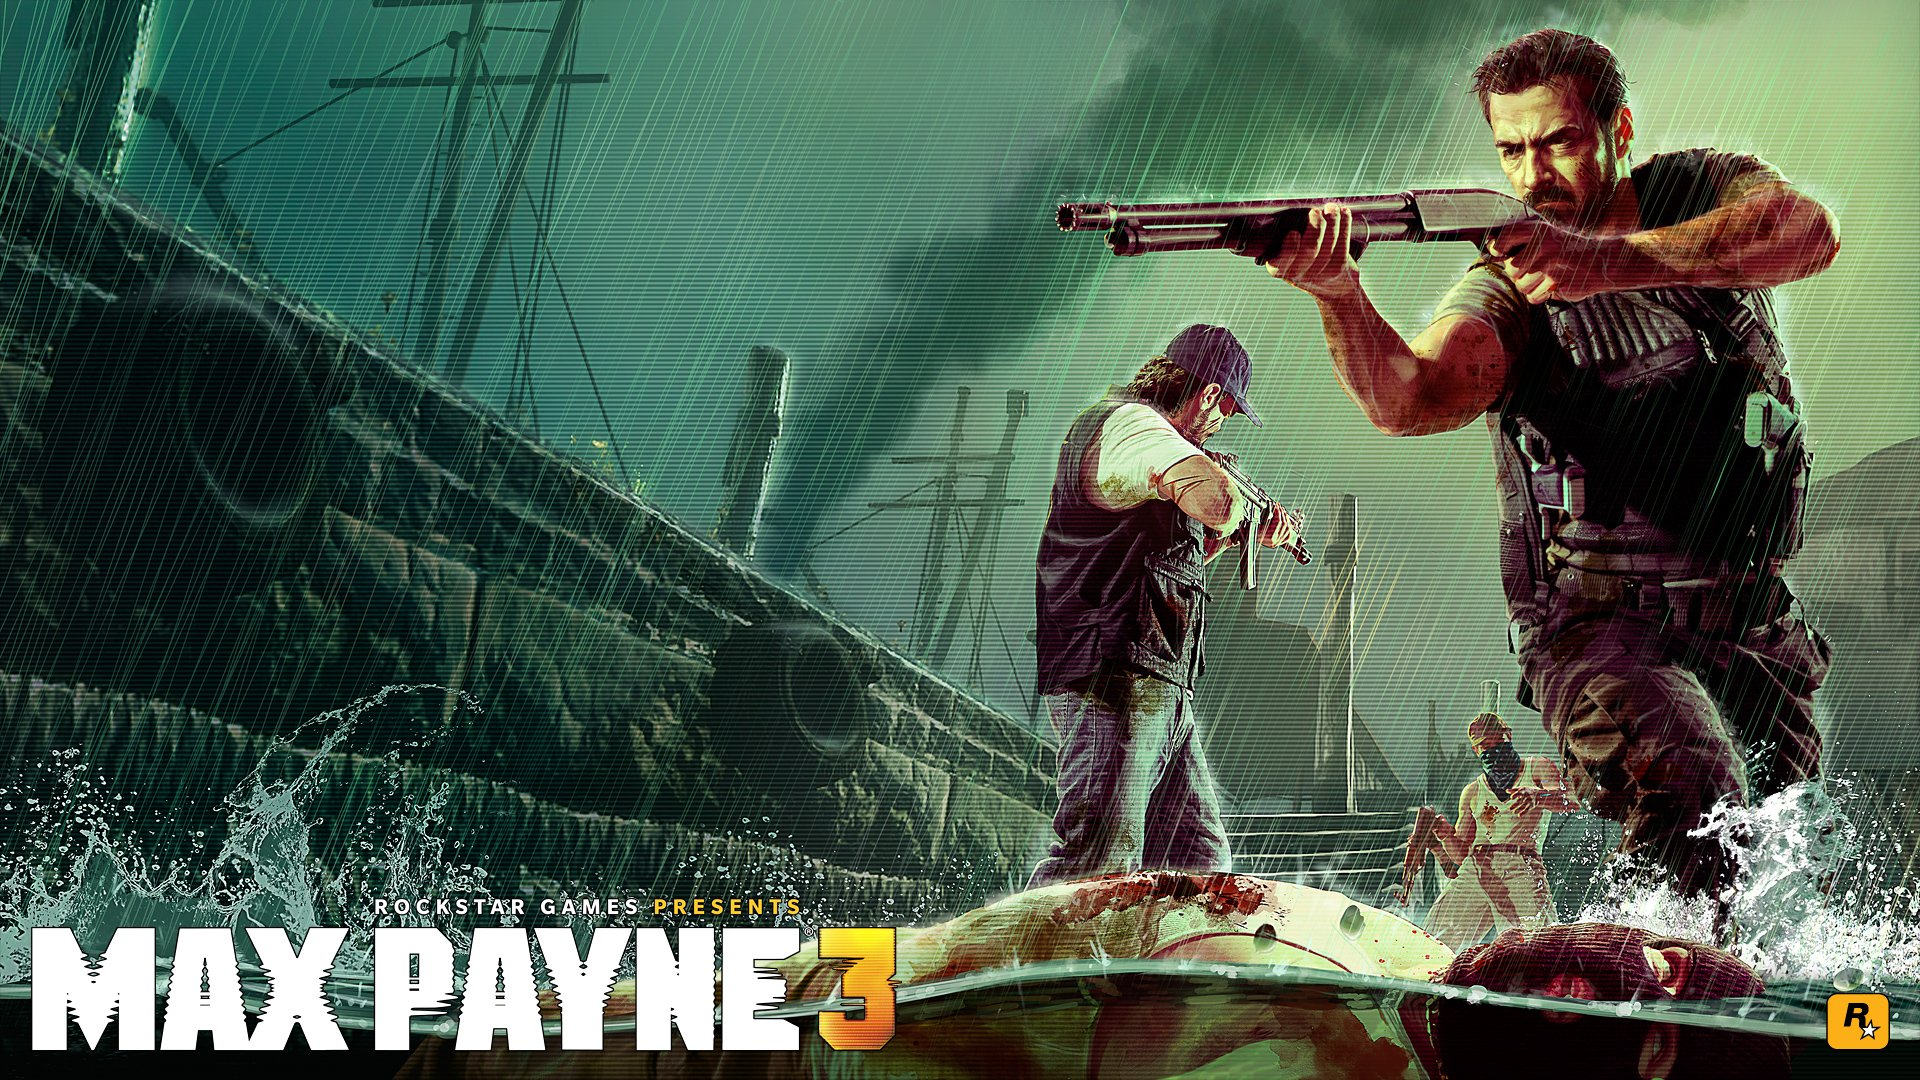 hd wallpaper max payne 3 wallpapers55com   Best Wallpapers for PCs 1920x1080